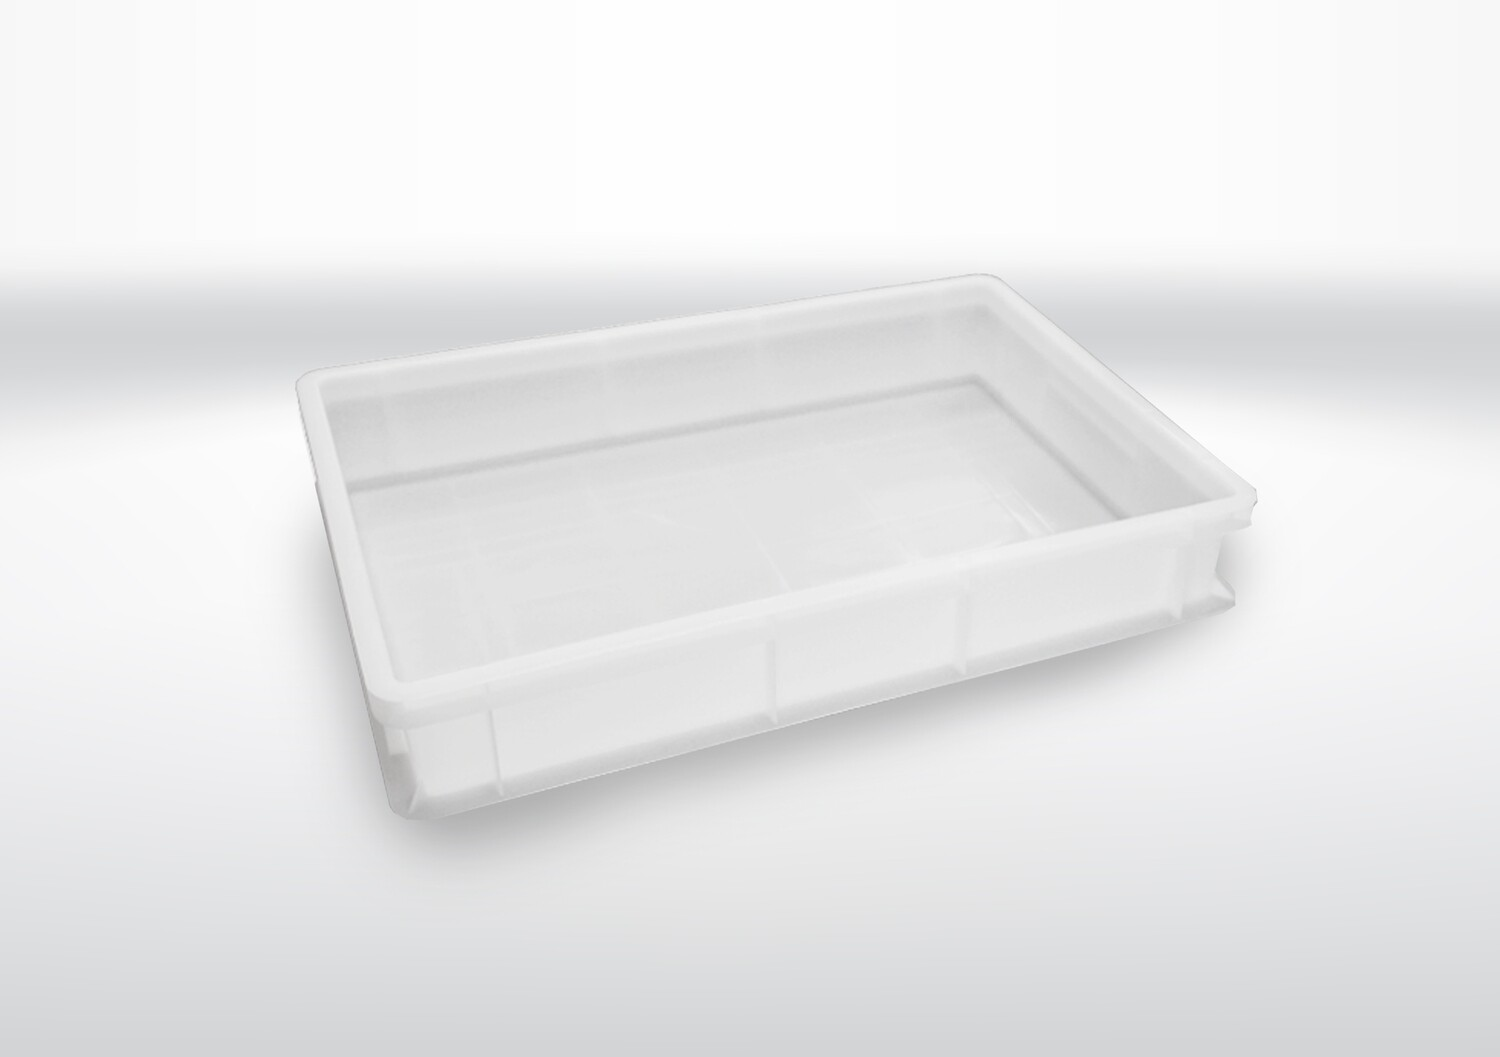 Dough Ball Trays (600mm x 400mm x 75mm)